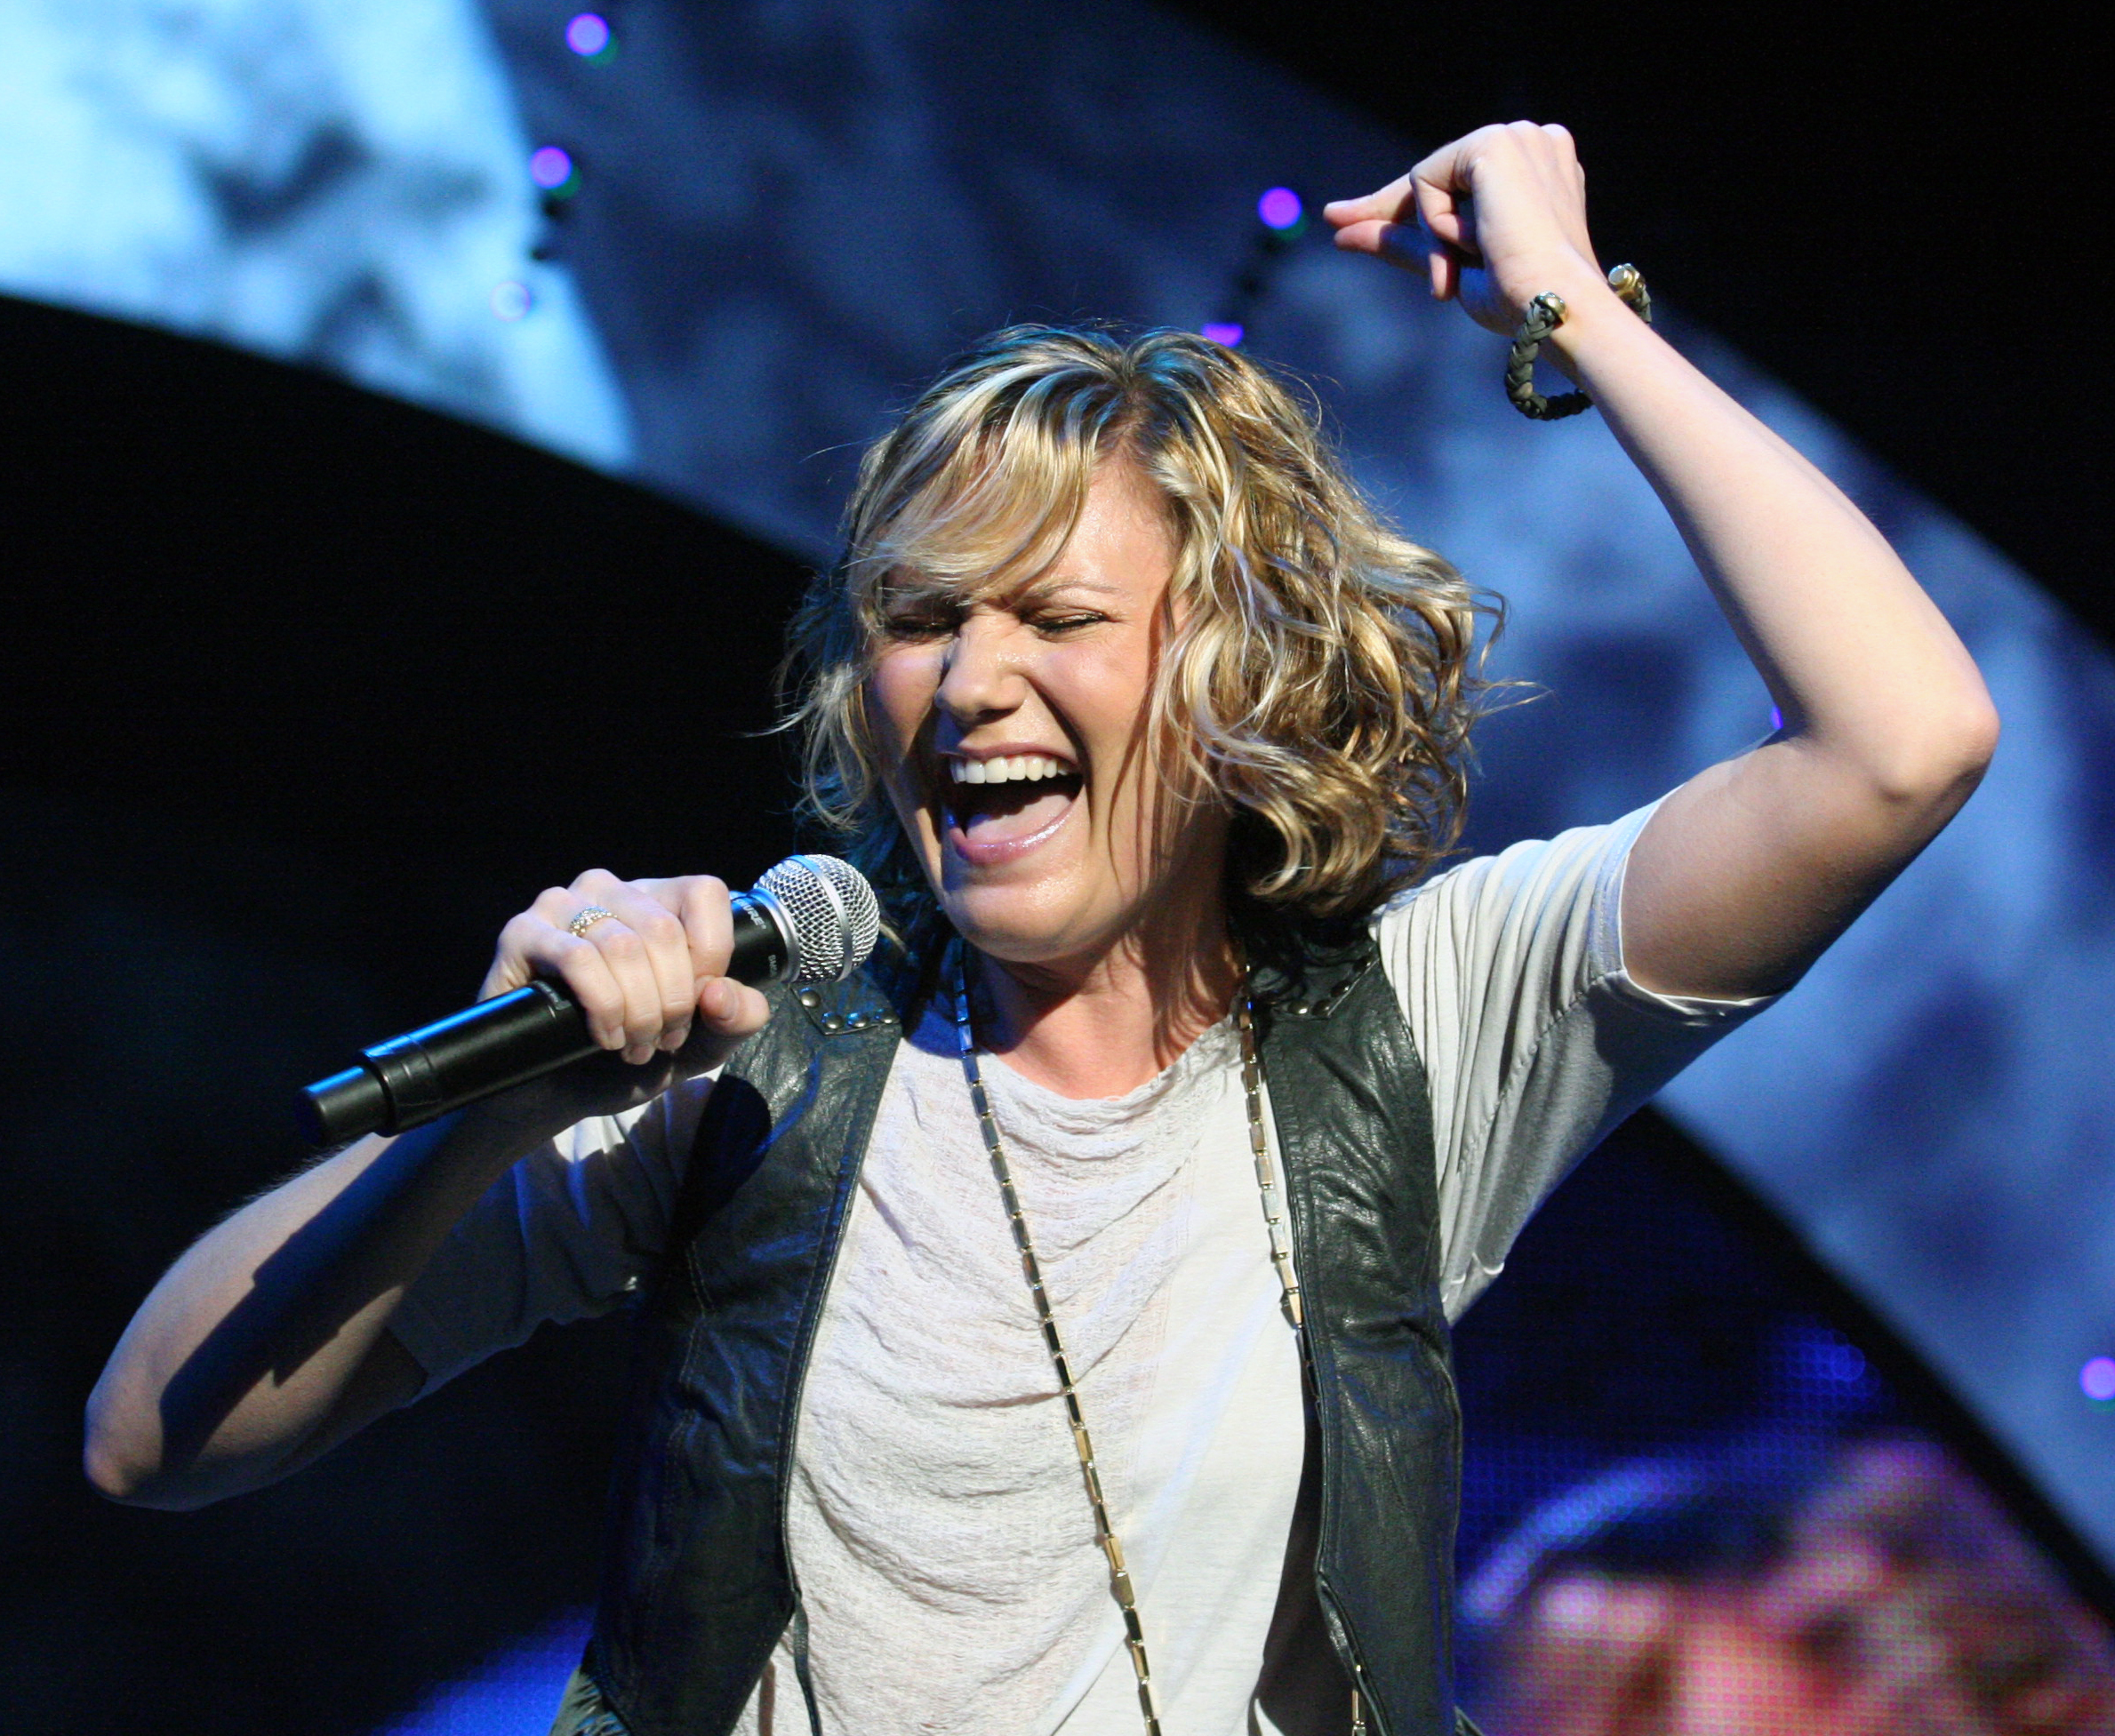 Jennifer Nettles Wikipedia